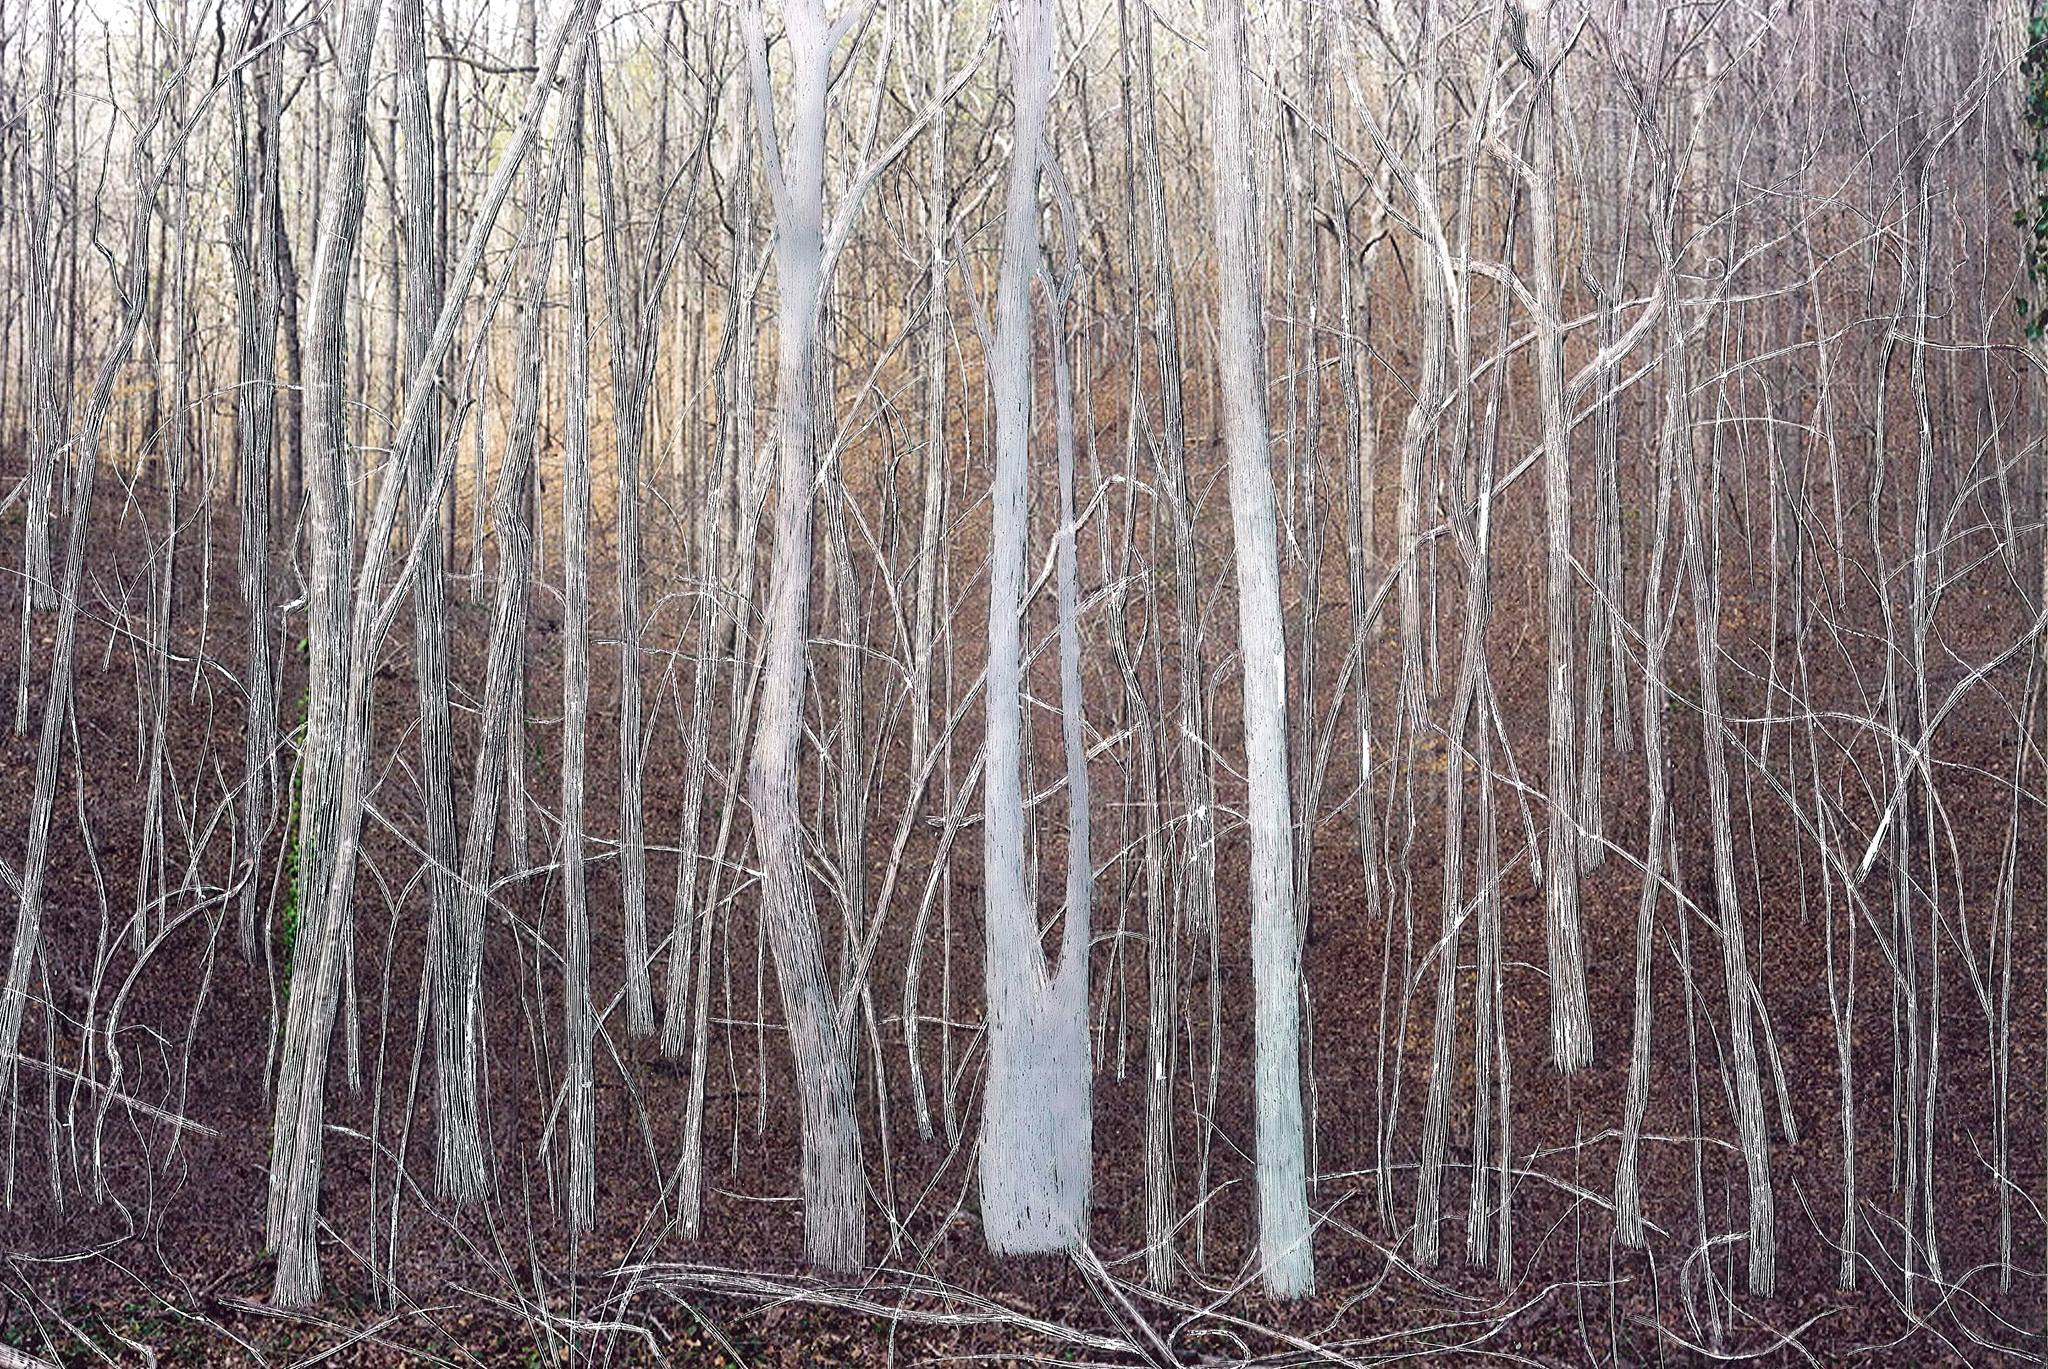 Woods / Exhibition of photographs and drawings by Svetlana Ždrnja / 17. Januar 2015